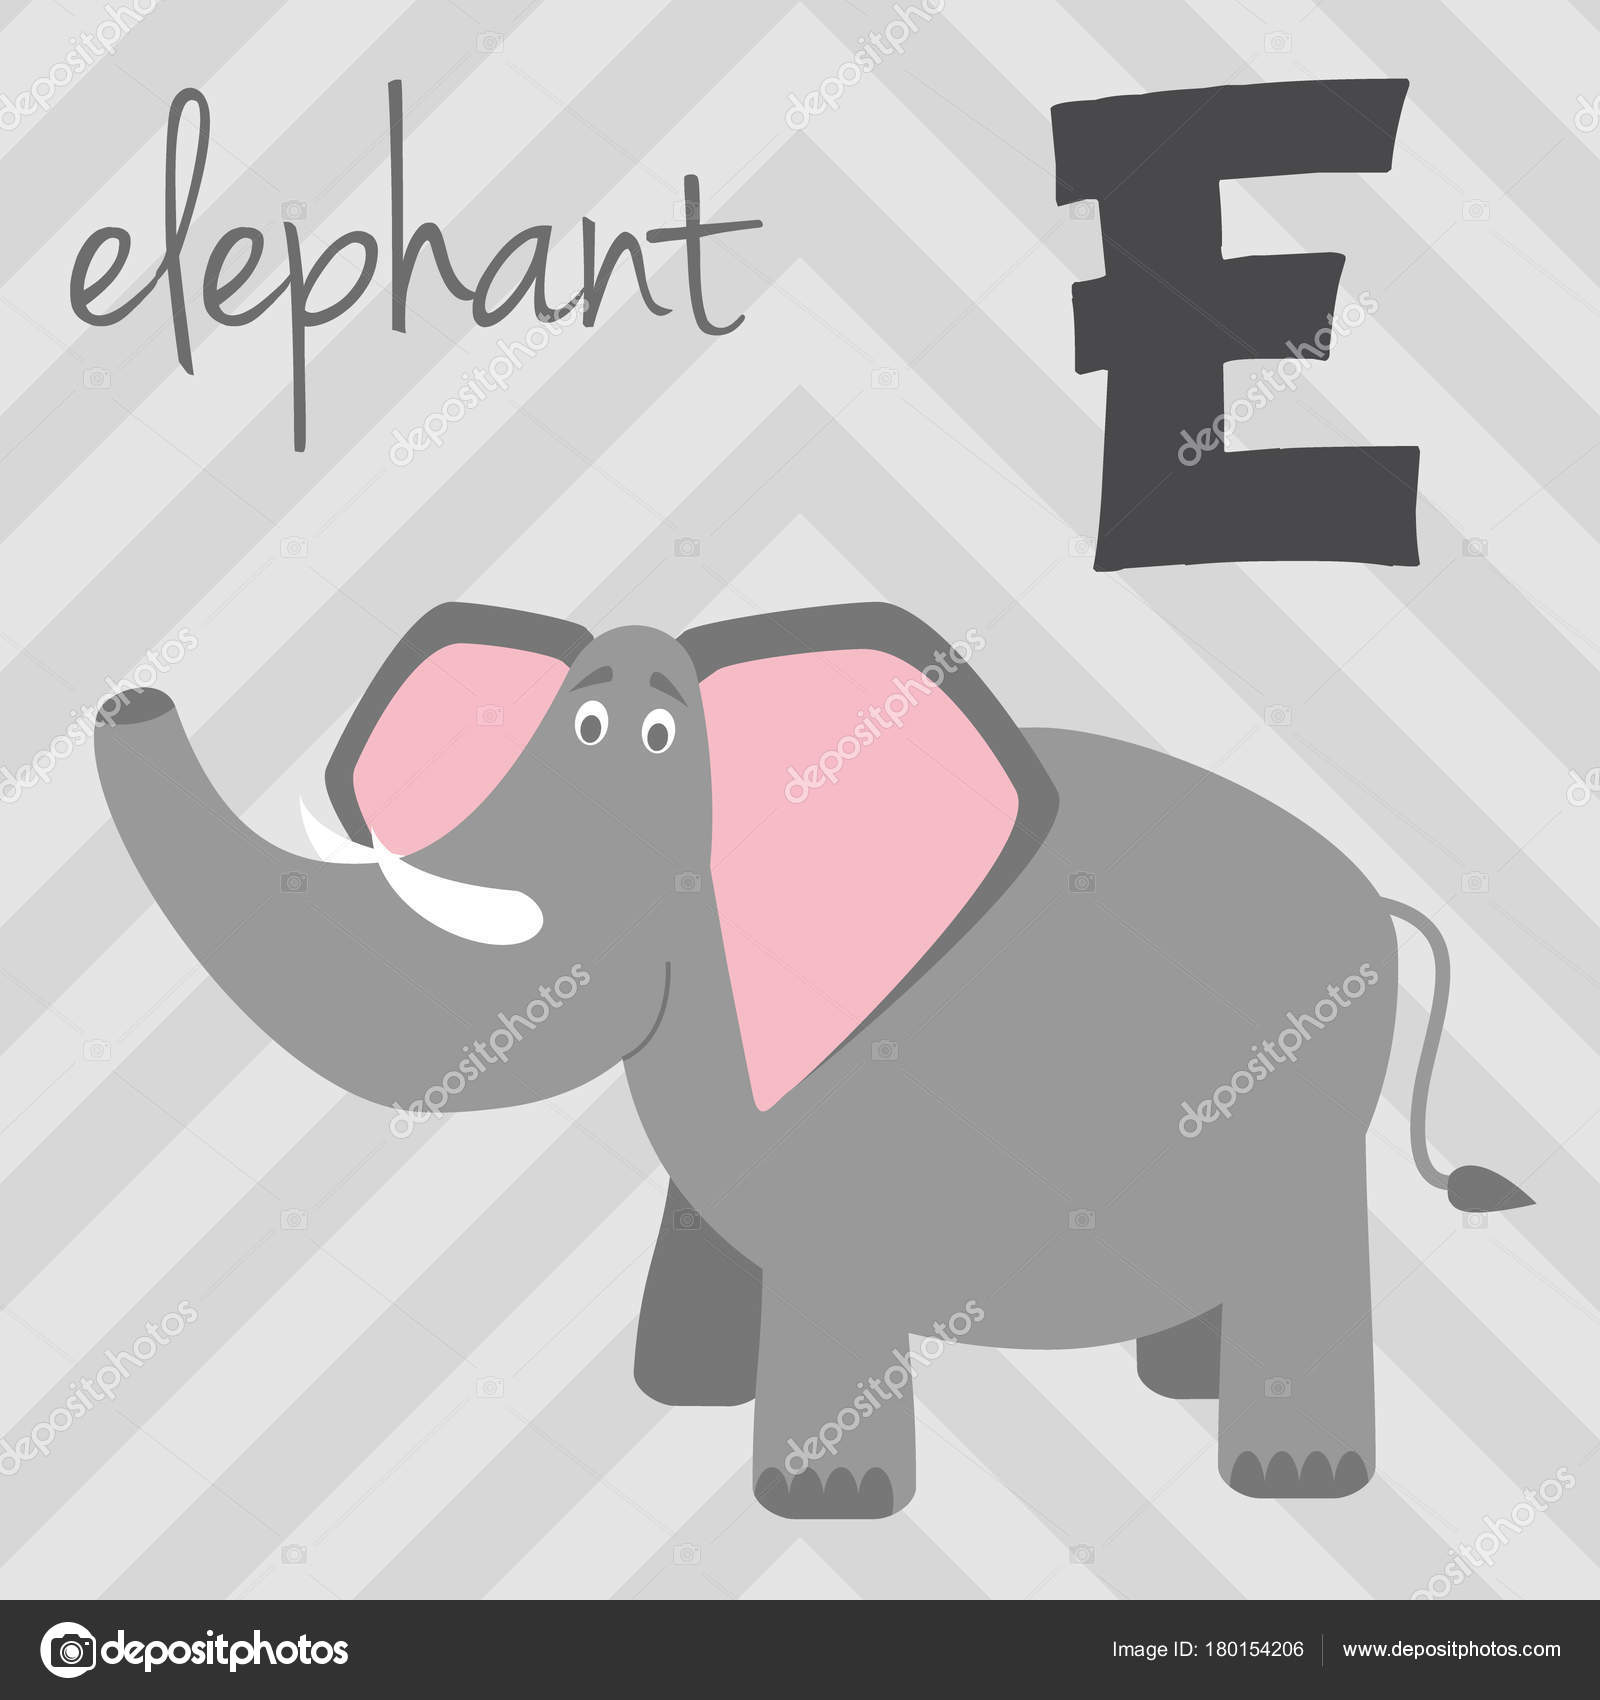 Cute Cartoon Zoo Illustrated Alphabet With Funny Animals E For Elephant English